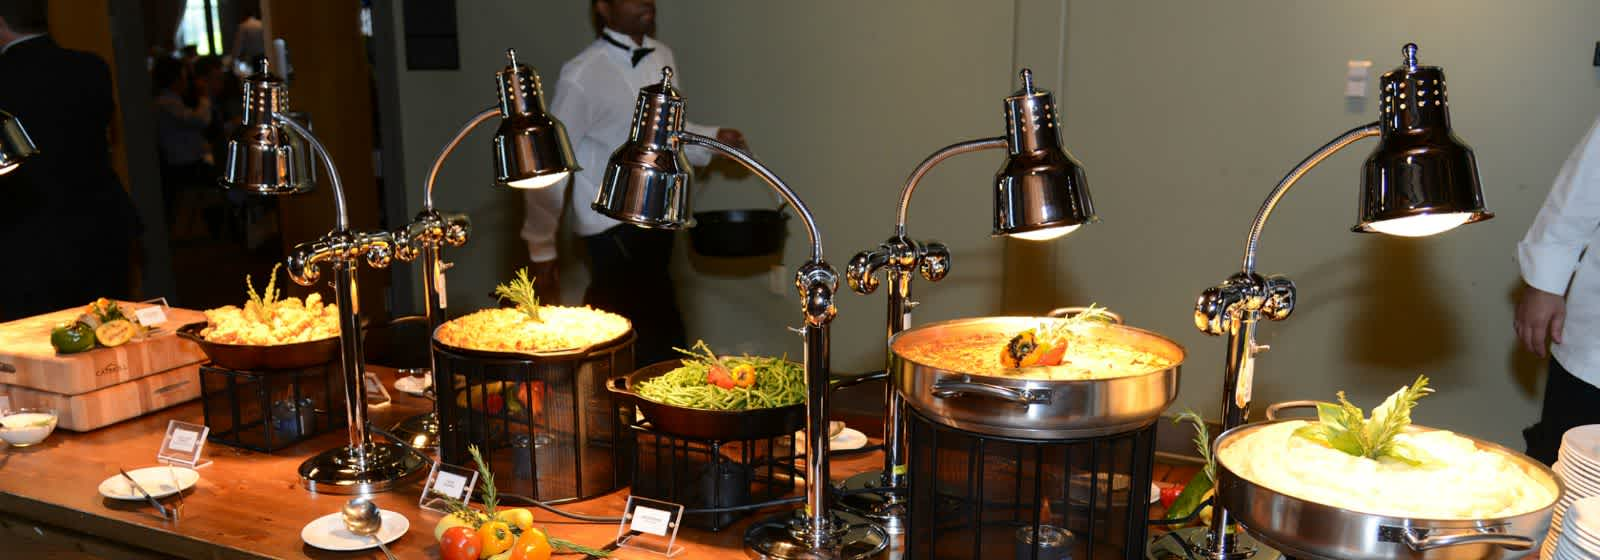 Buffet Bureau The Athens Convention And Visitors Bureau Can Work With You To